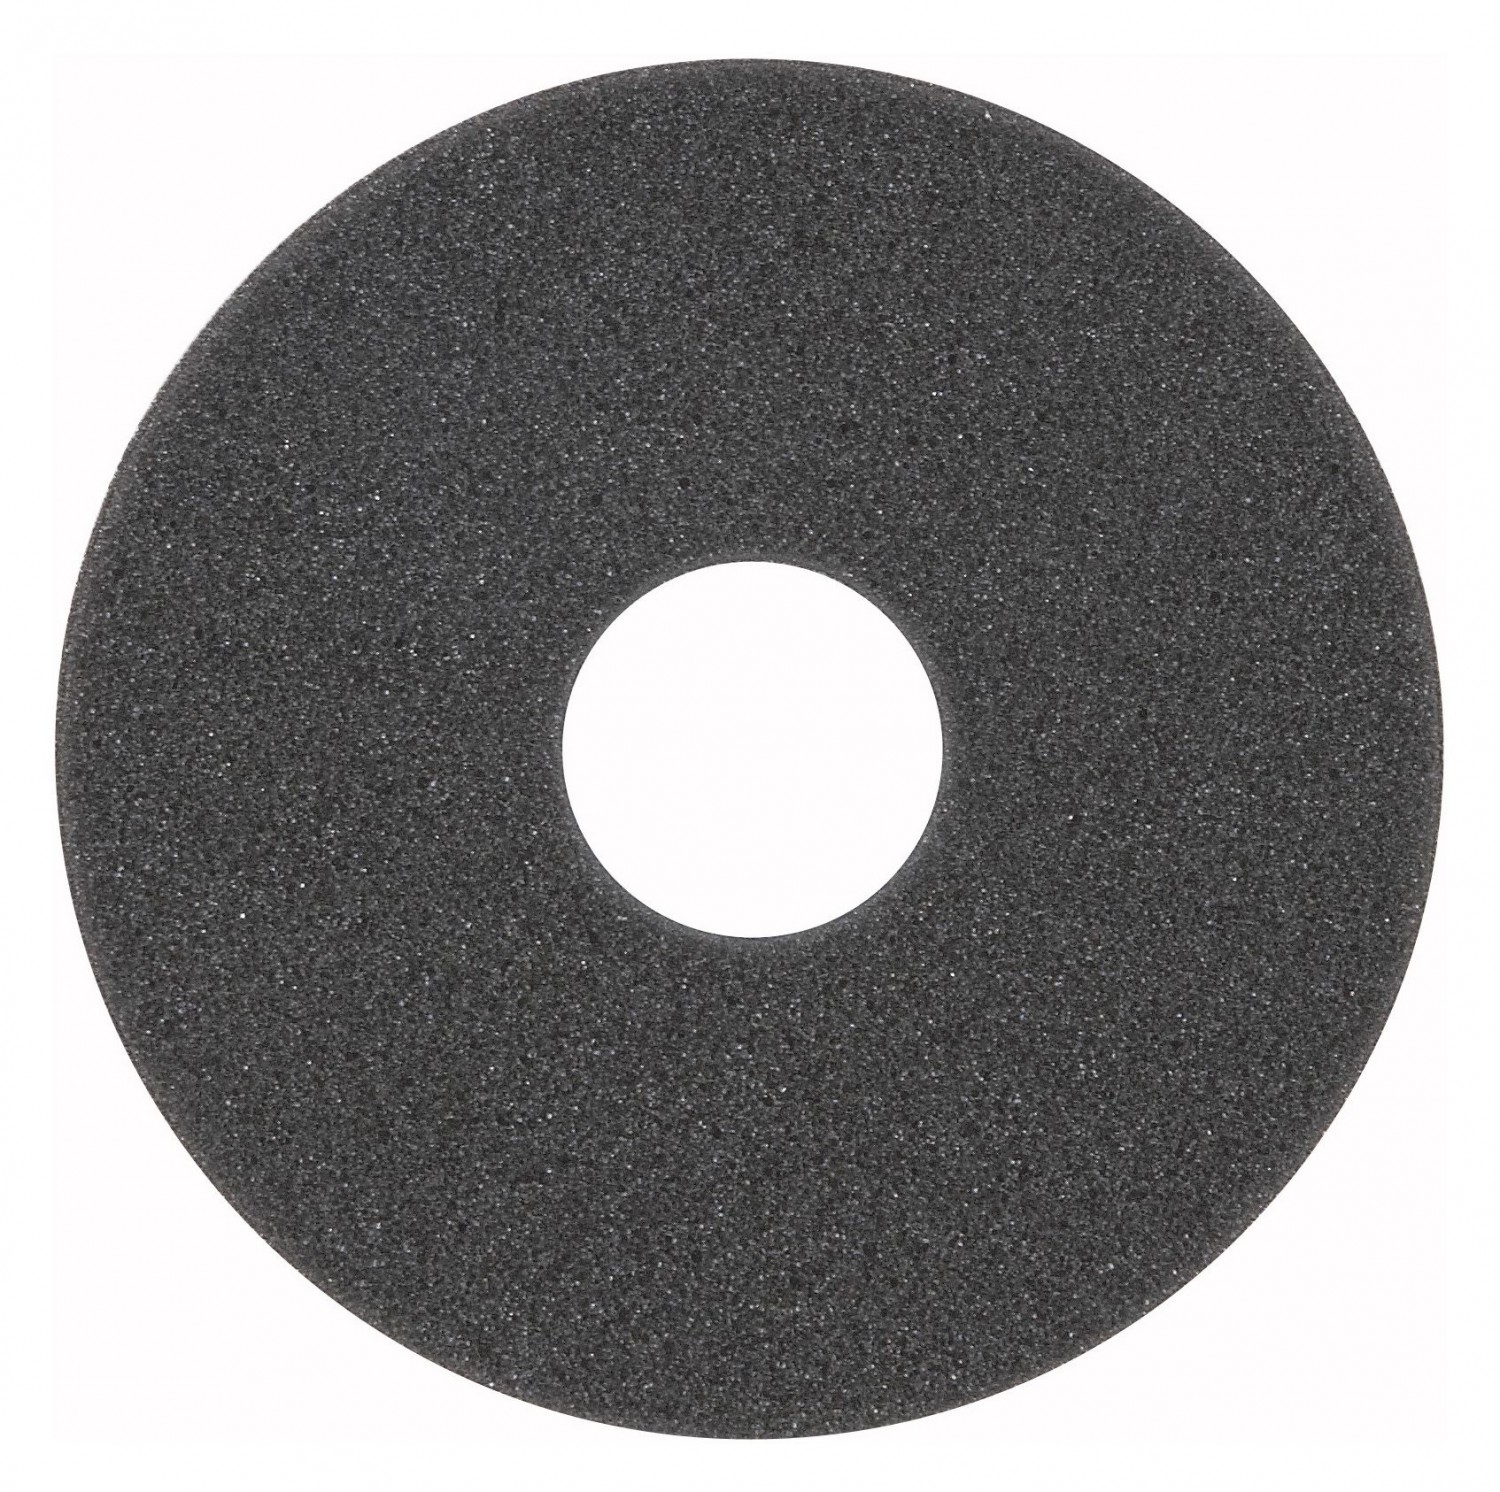 Winco GR-3S Glass Rimmer Replacement Sponge for GR-3